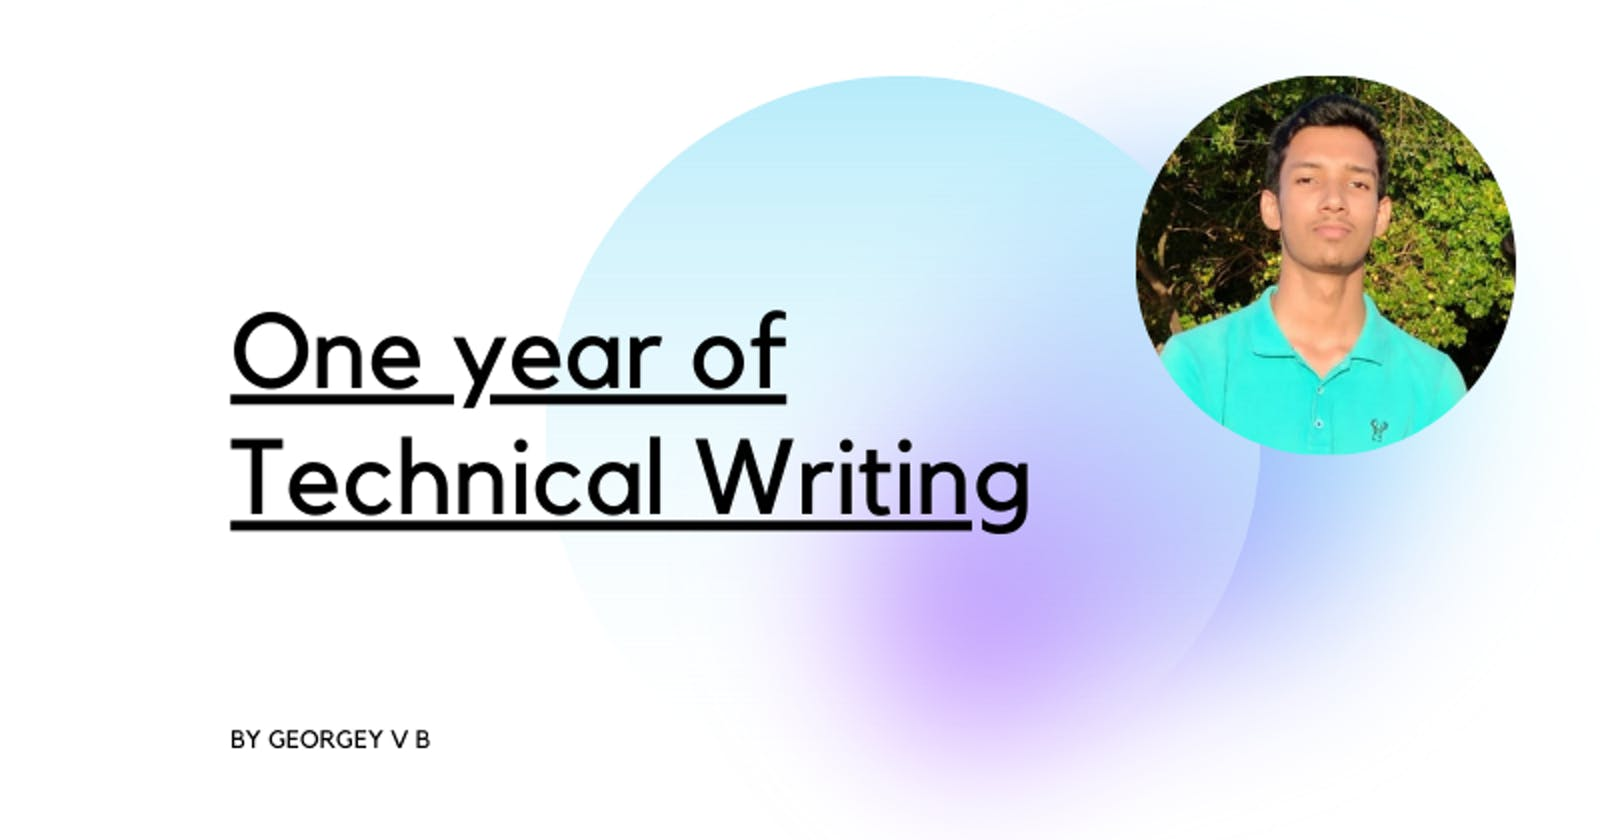 One year of Technical Writing: From zero to 💰